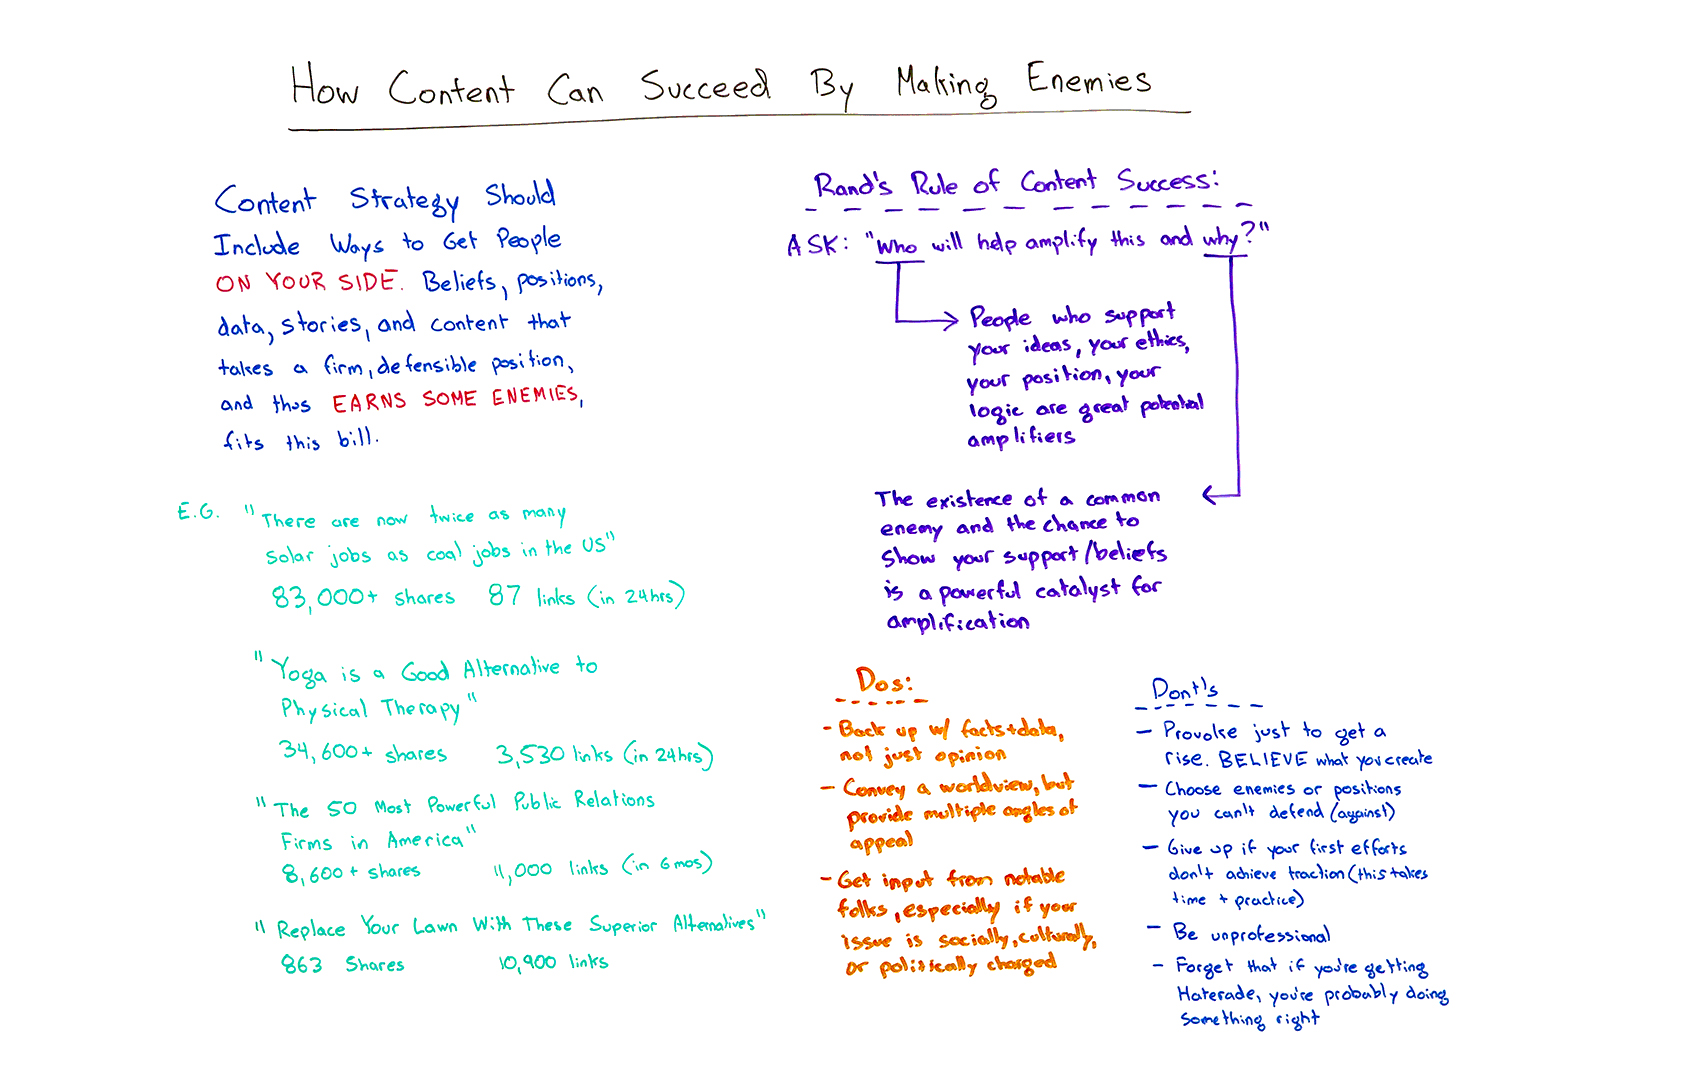 How content can succeed by making enemies